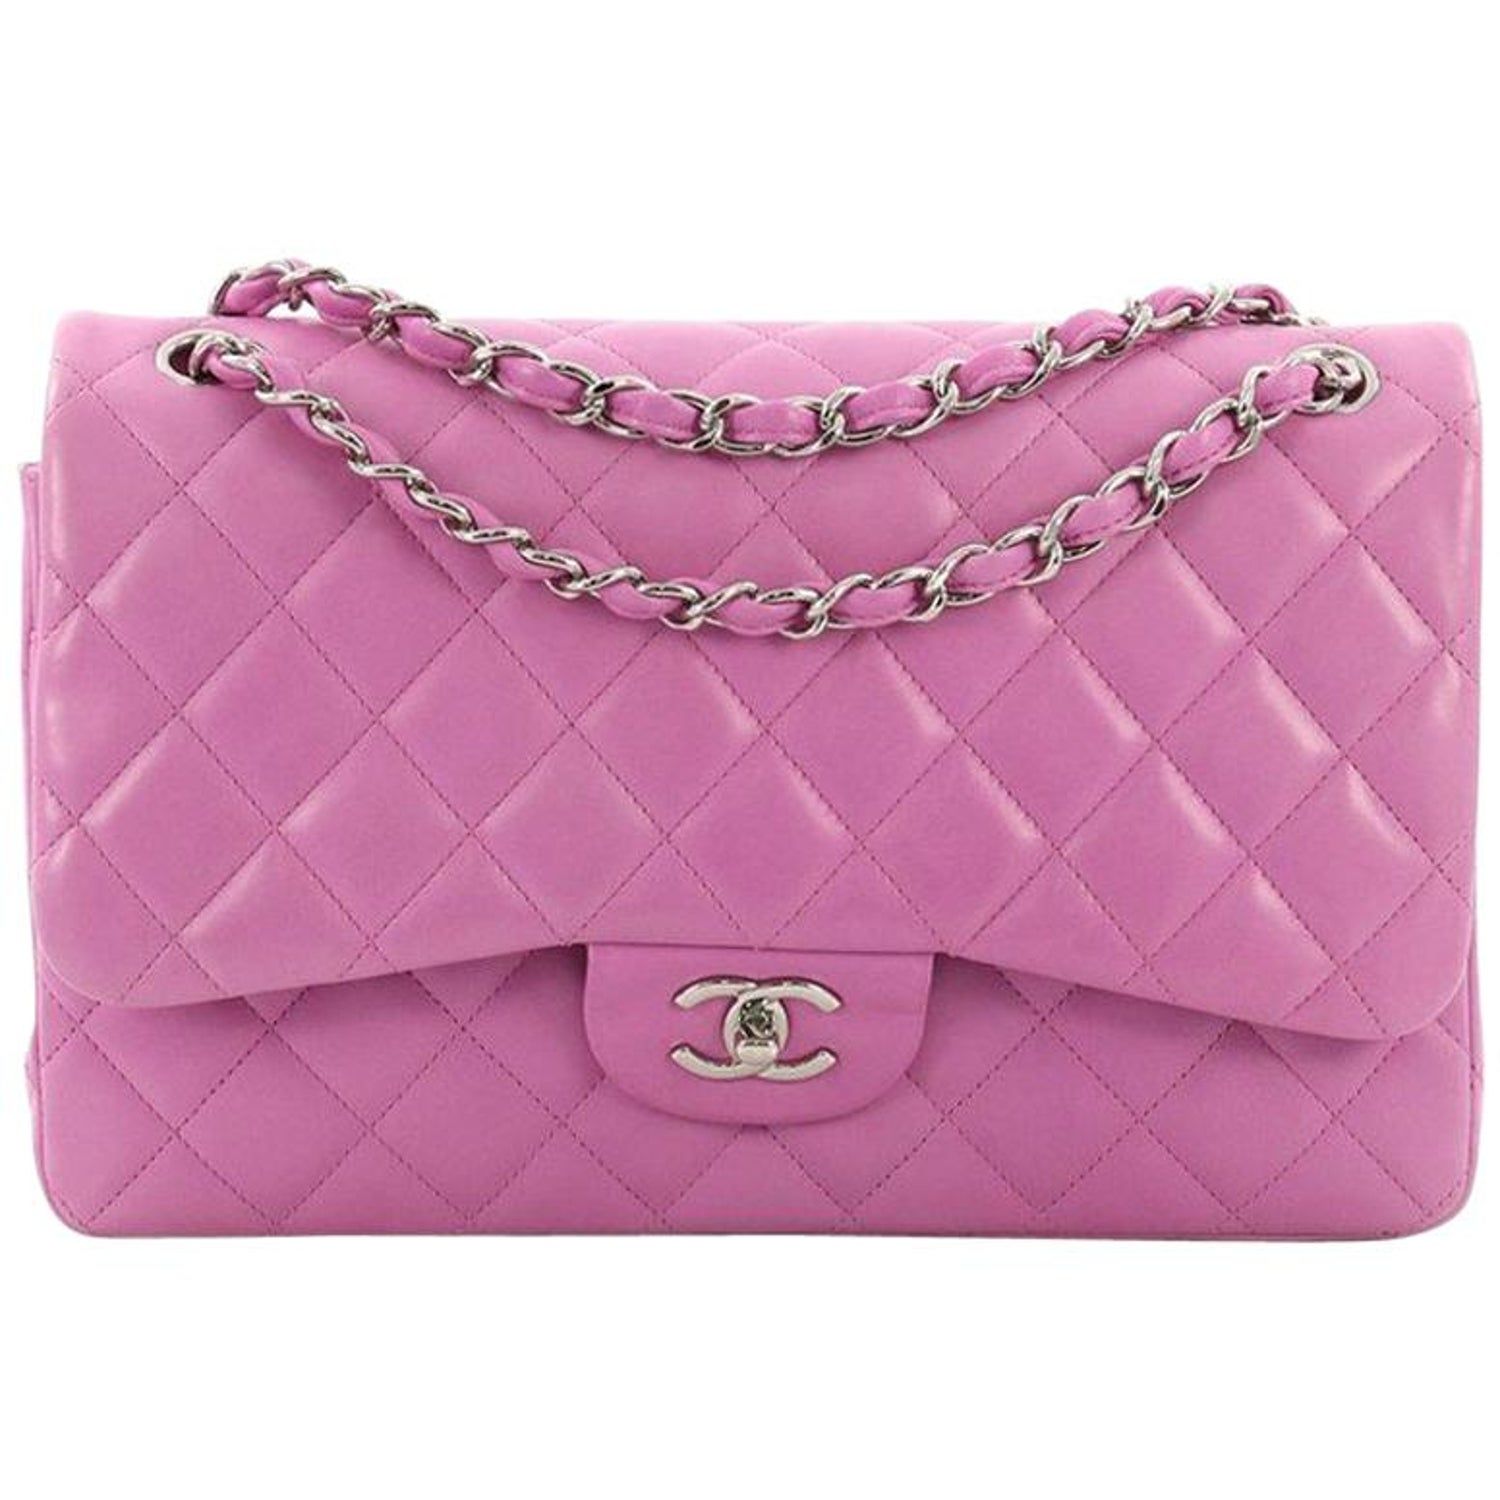 131c0add1c9e Chanel Classic Double Flap Bag Quilted Lambskin Jumbo at 1stdibs